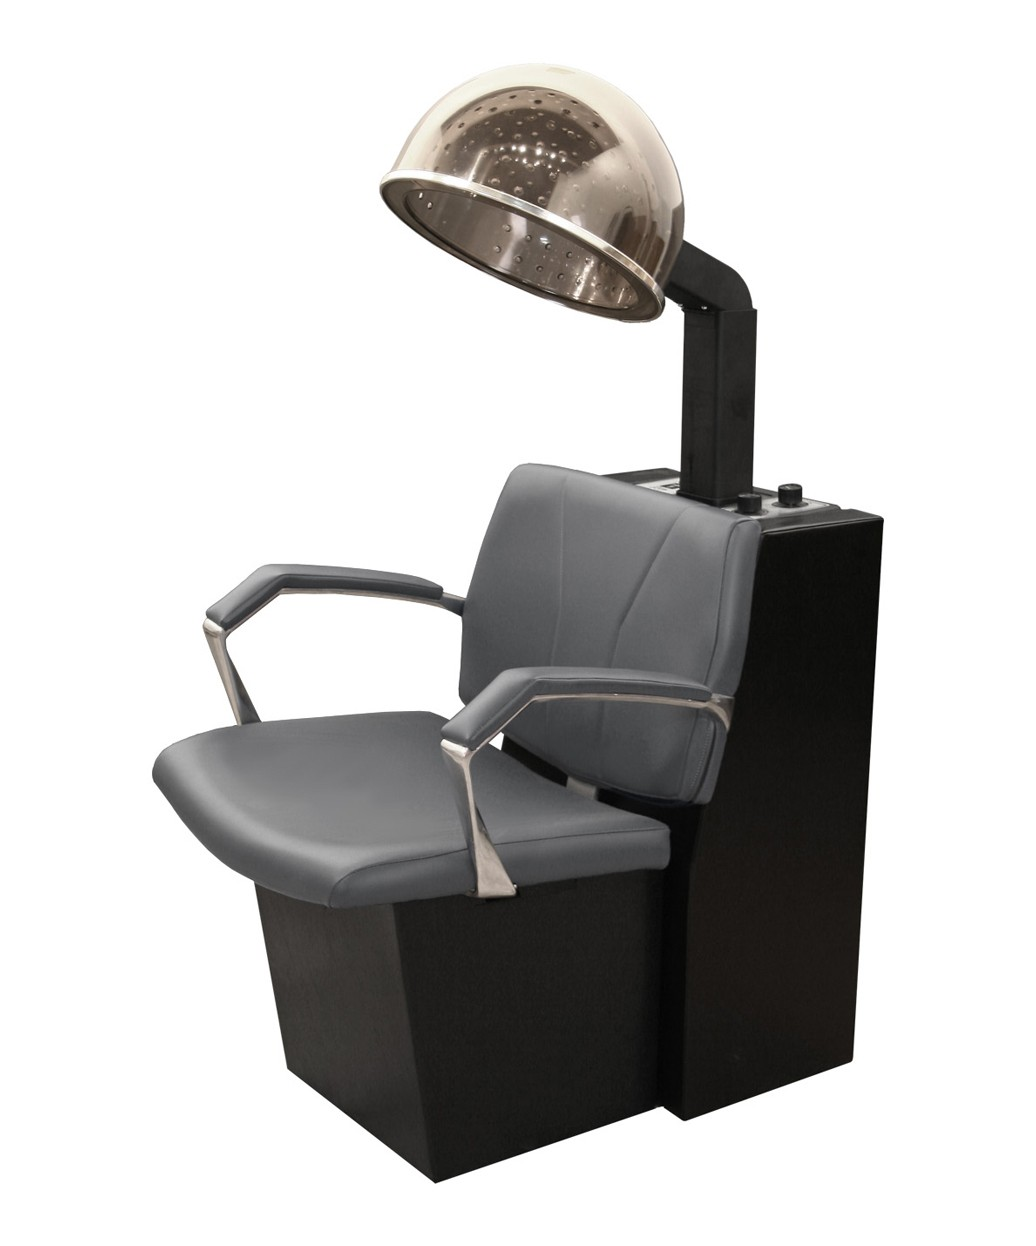 Collins 5220 Phenix Dryer Chair